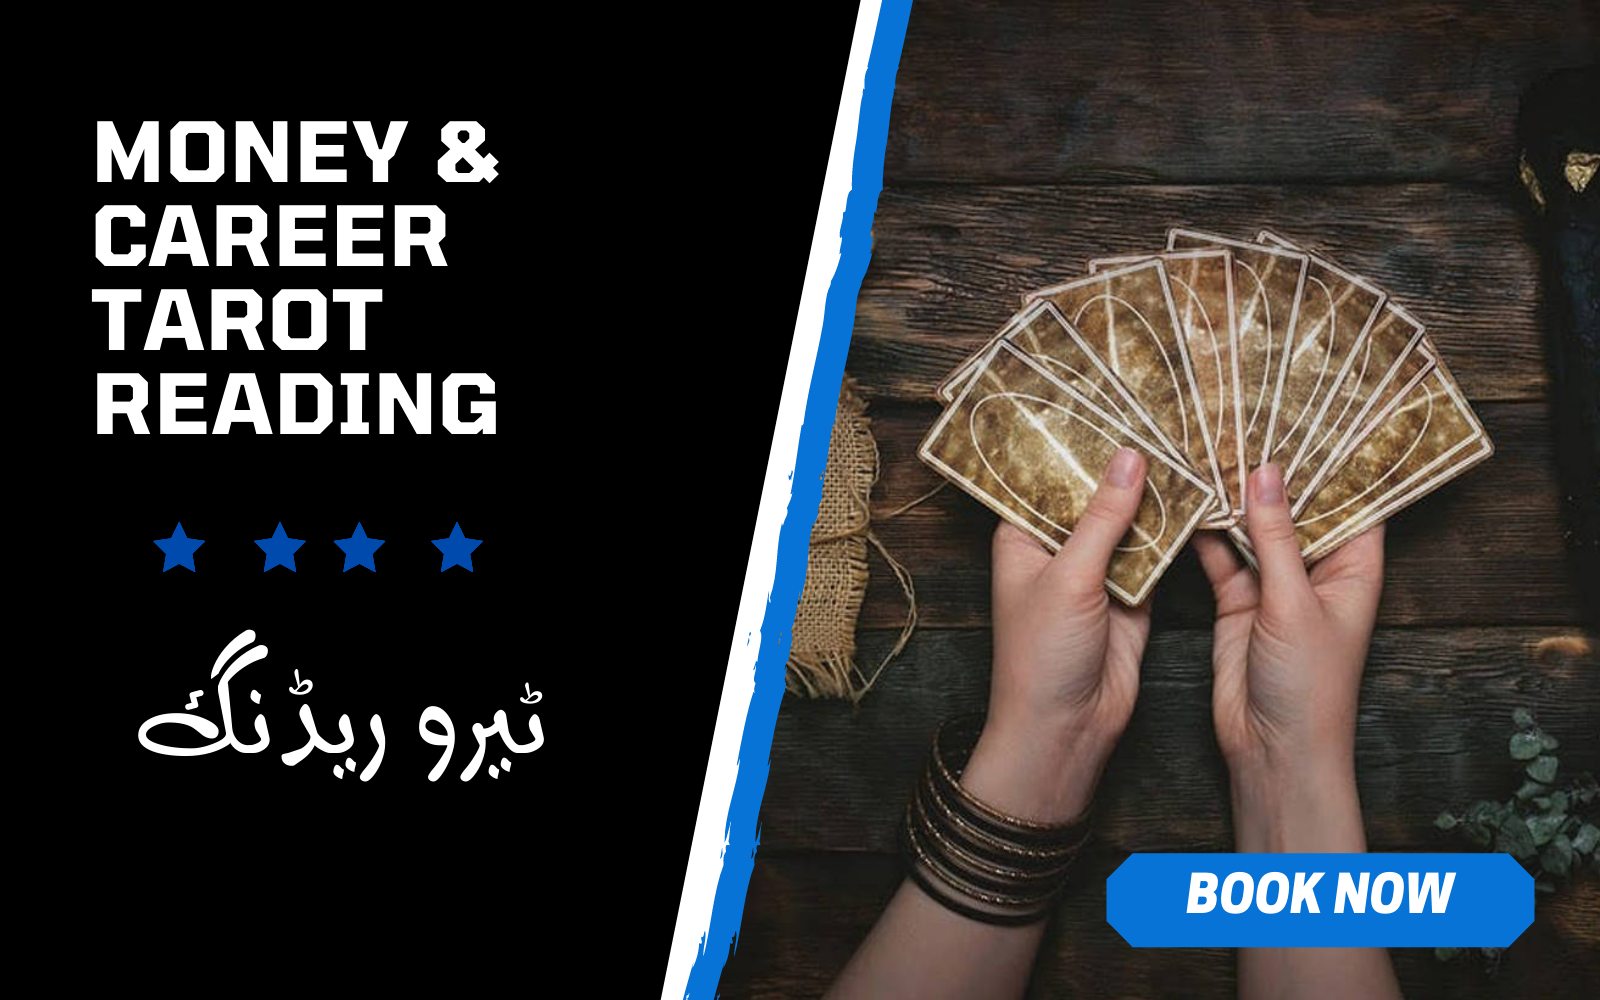 I will do a Psychic Reading on your Money and Career Goals